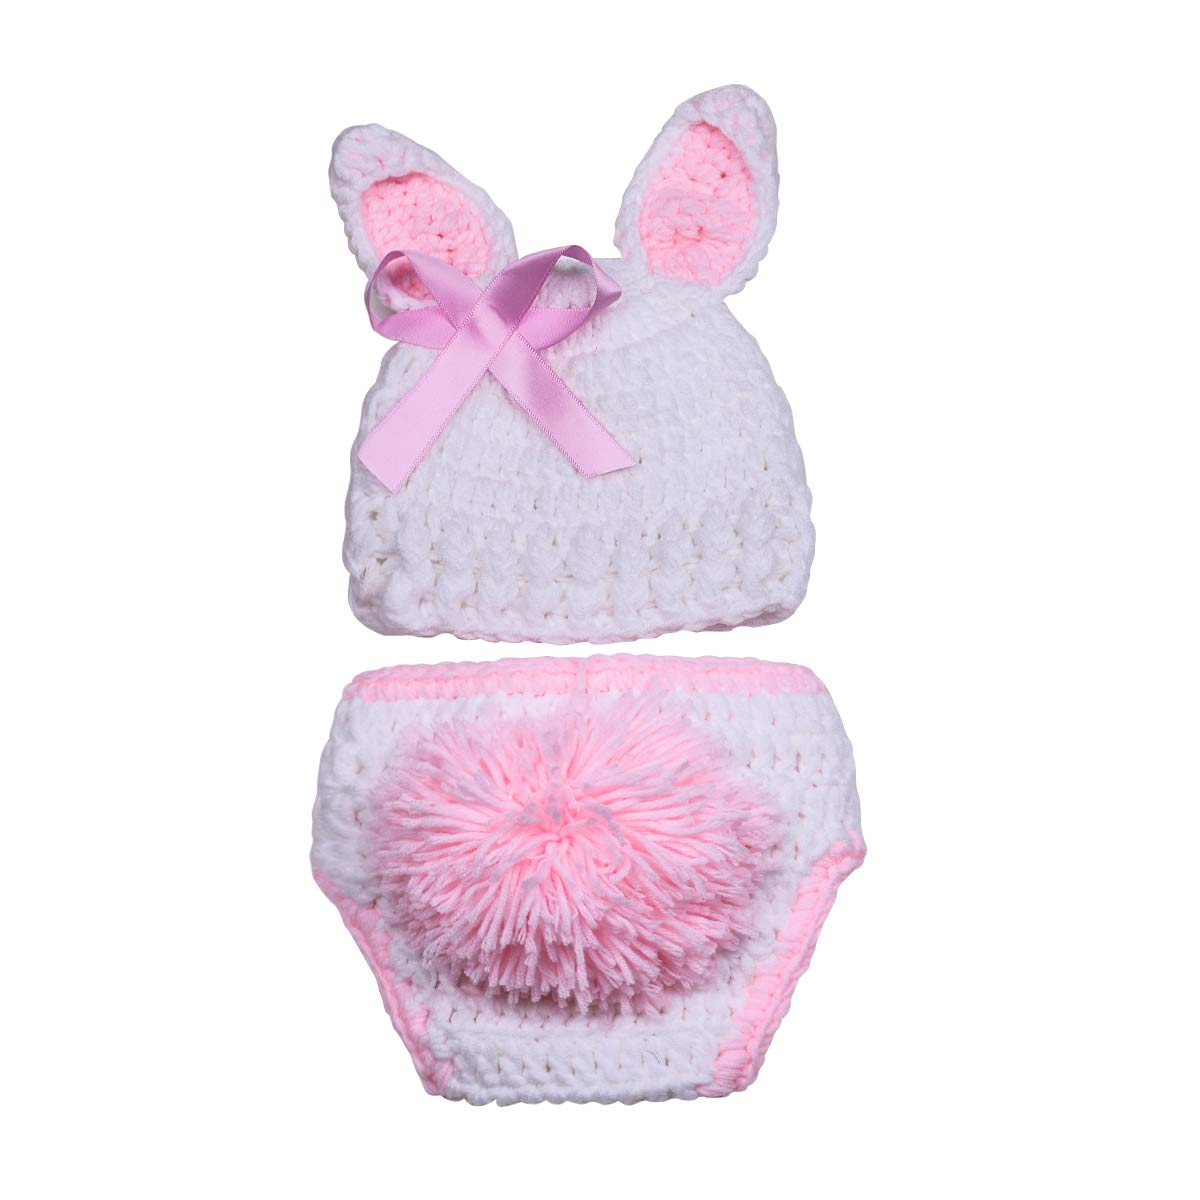 ISOCUTE Newborn Photography Props Baby Girl Easter Bunny Crochet Knitted Rabbit Set by ISOCUTE (Image #2)